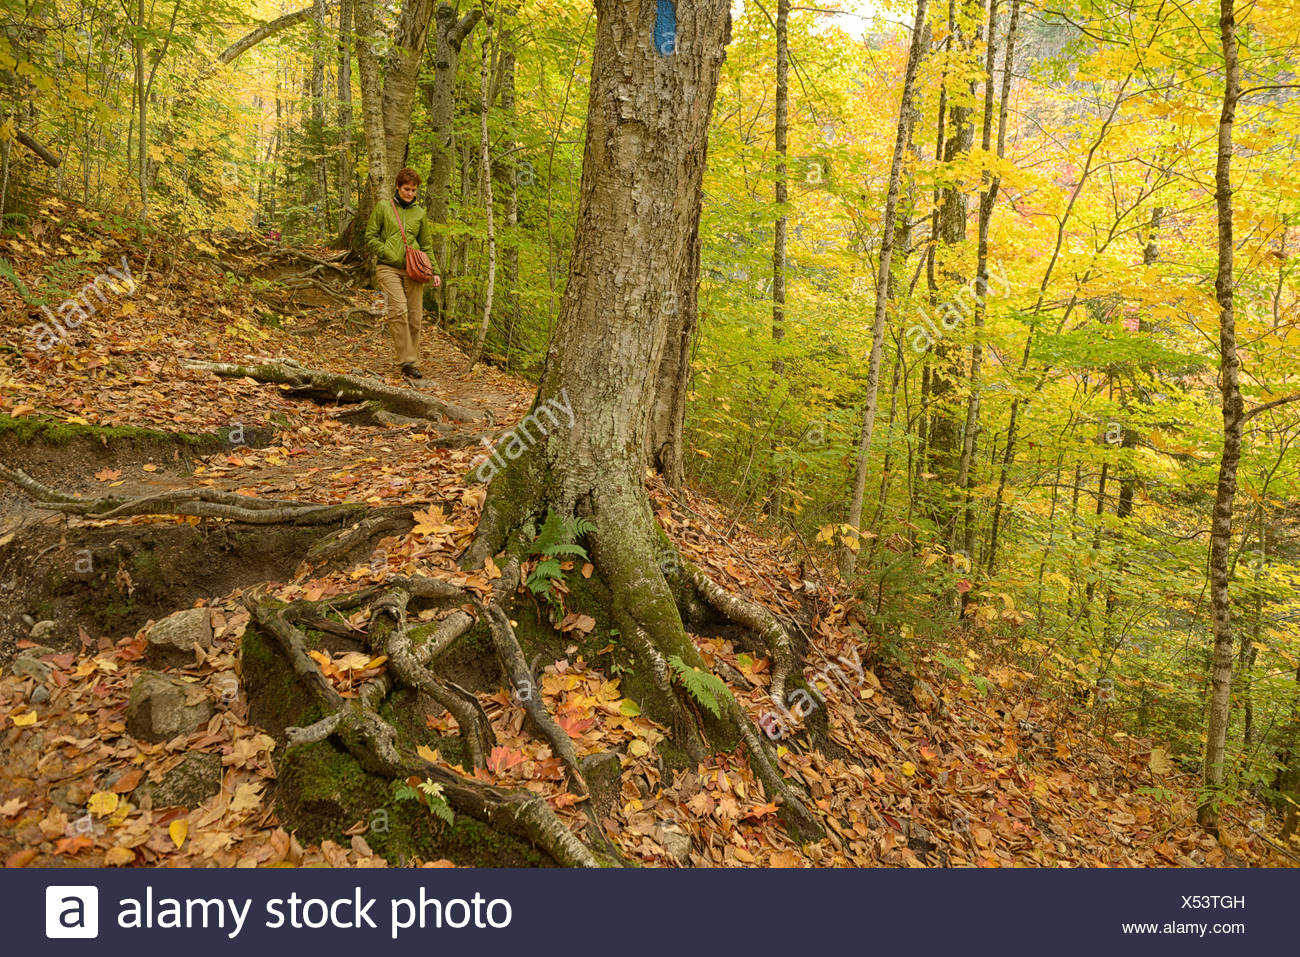 USA, United States, America, New Hampshire, Crawford Notch, North America, New England, East Coast, Coos County, Indian Summer, Stock Photo